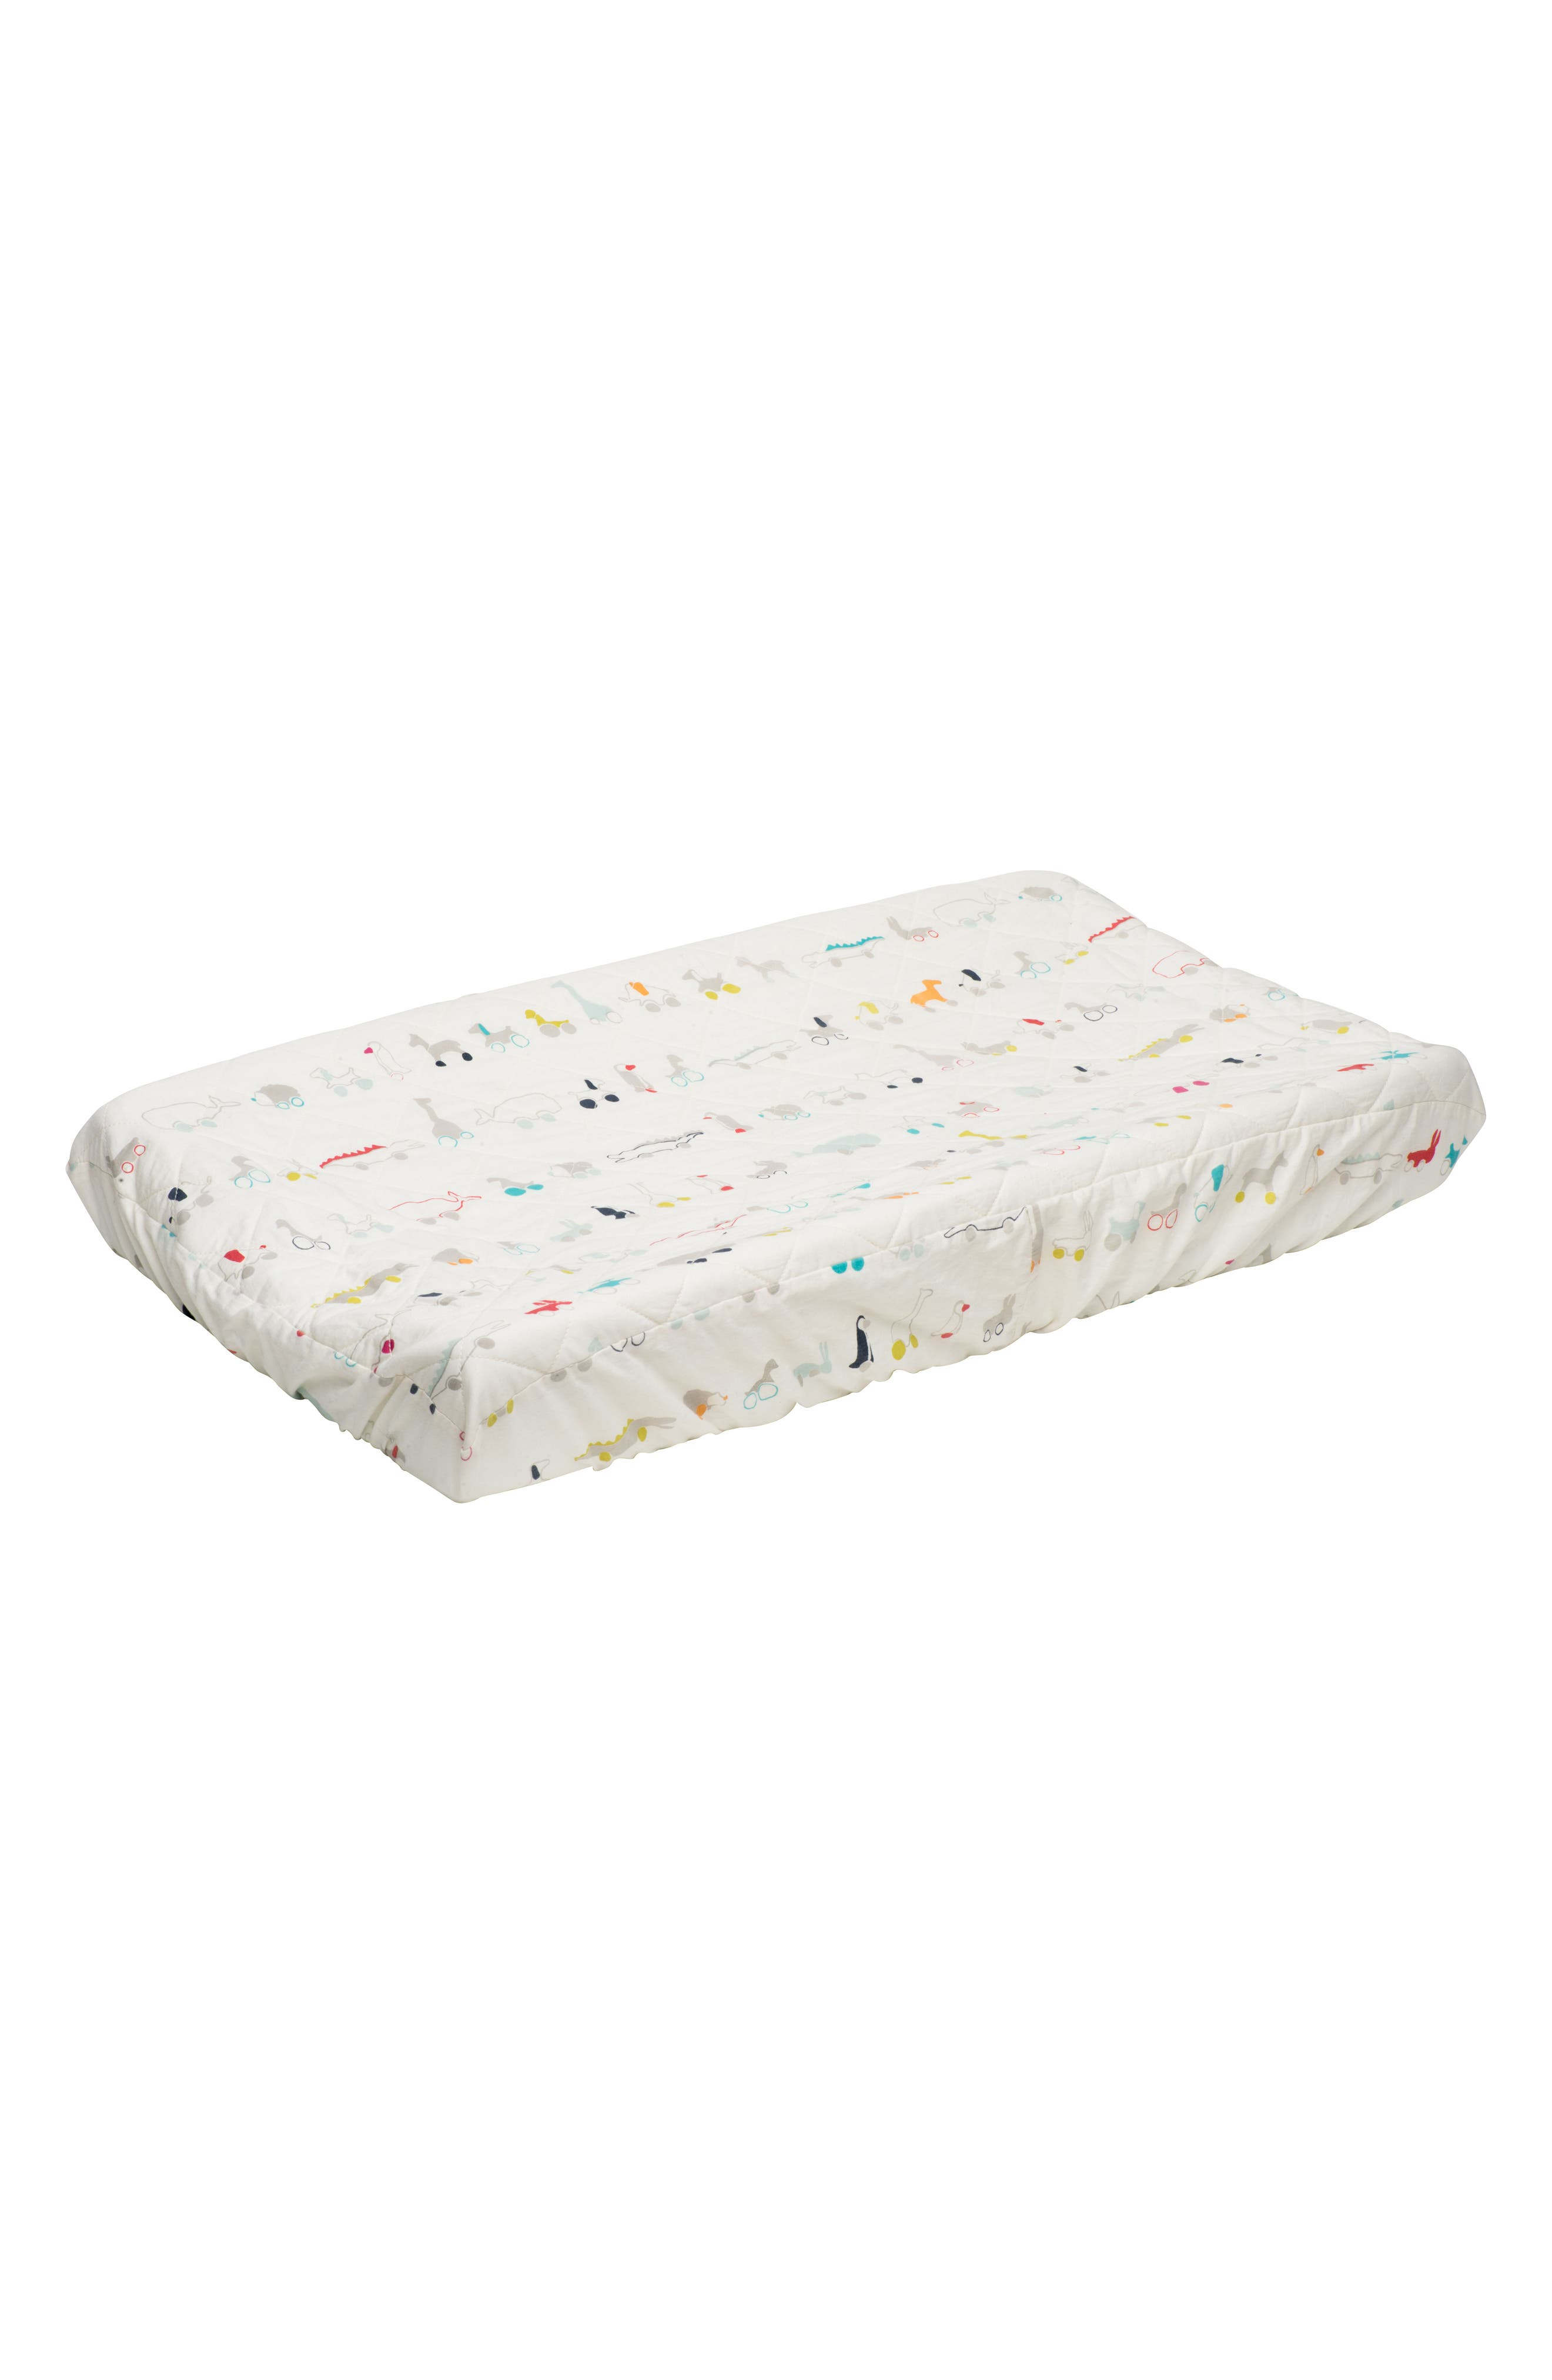 Pull Toys Changing Pad Cover,                         Main,                         color, MULTI